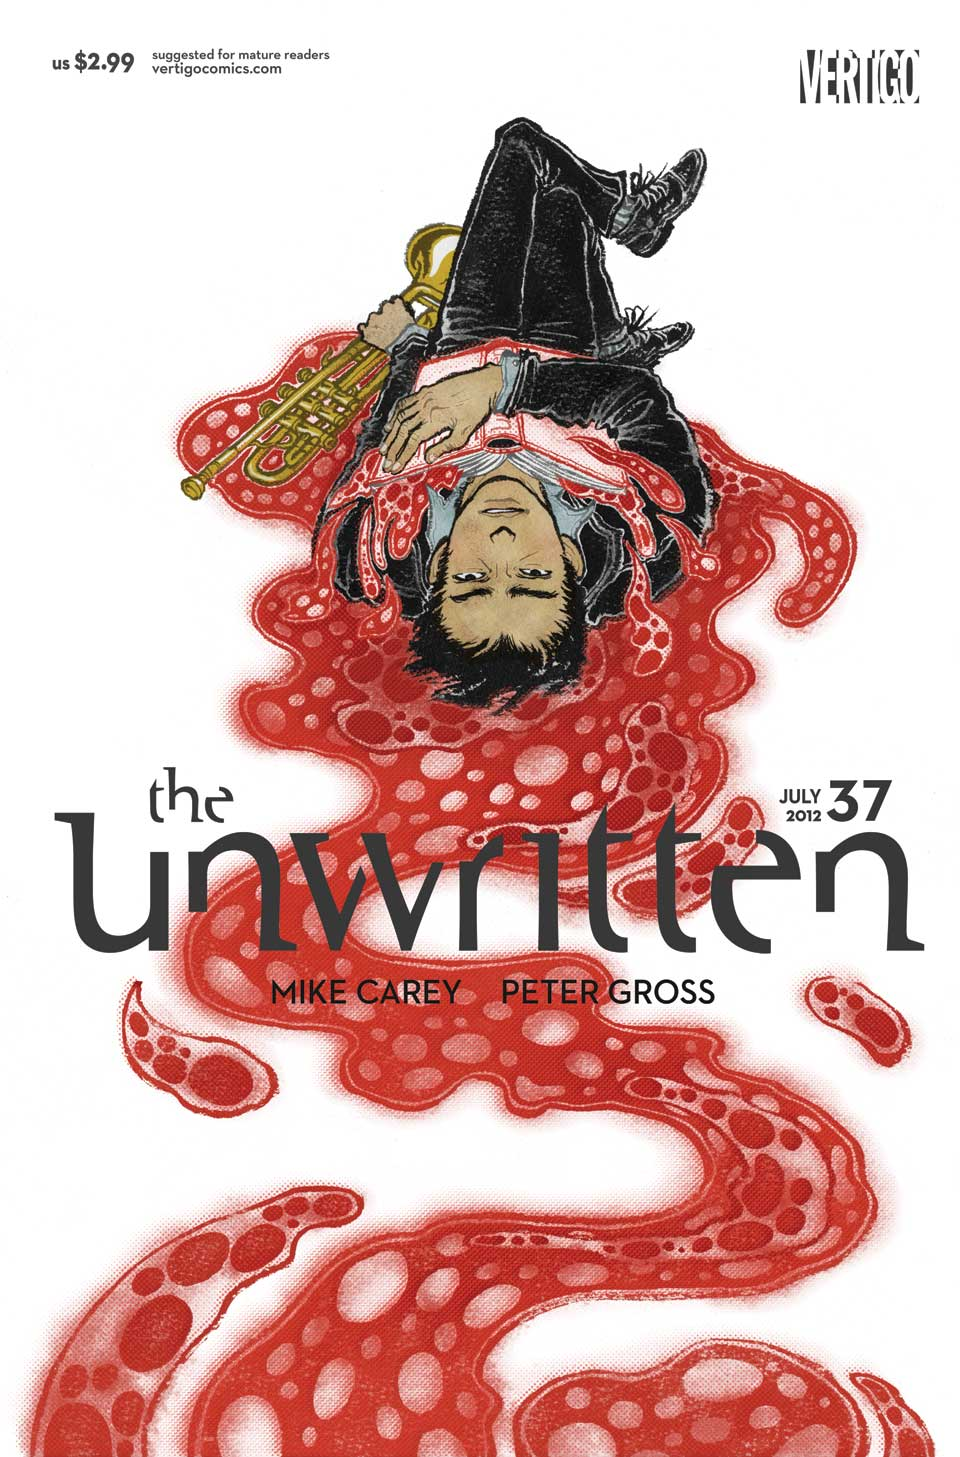 Yuko Shimizu - The Unwritten #37 - The Unwritten #37